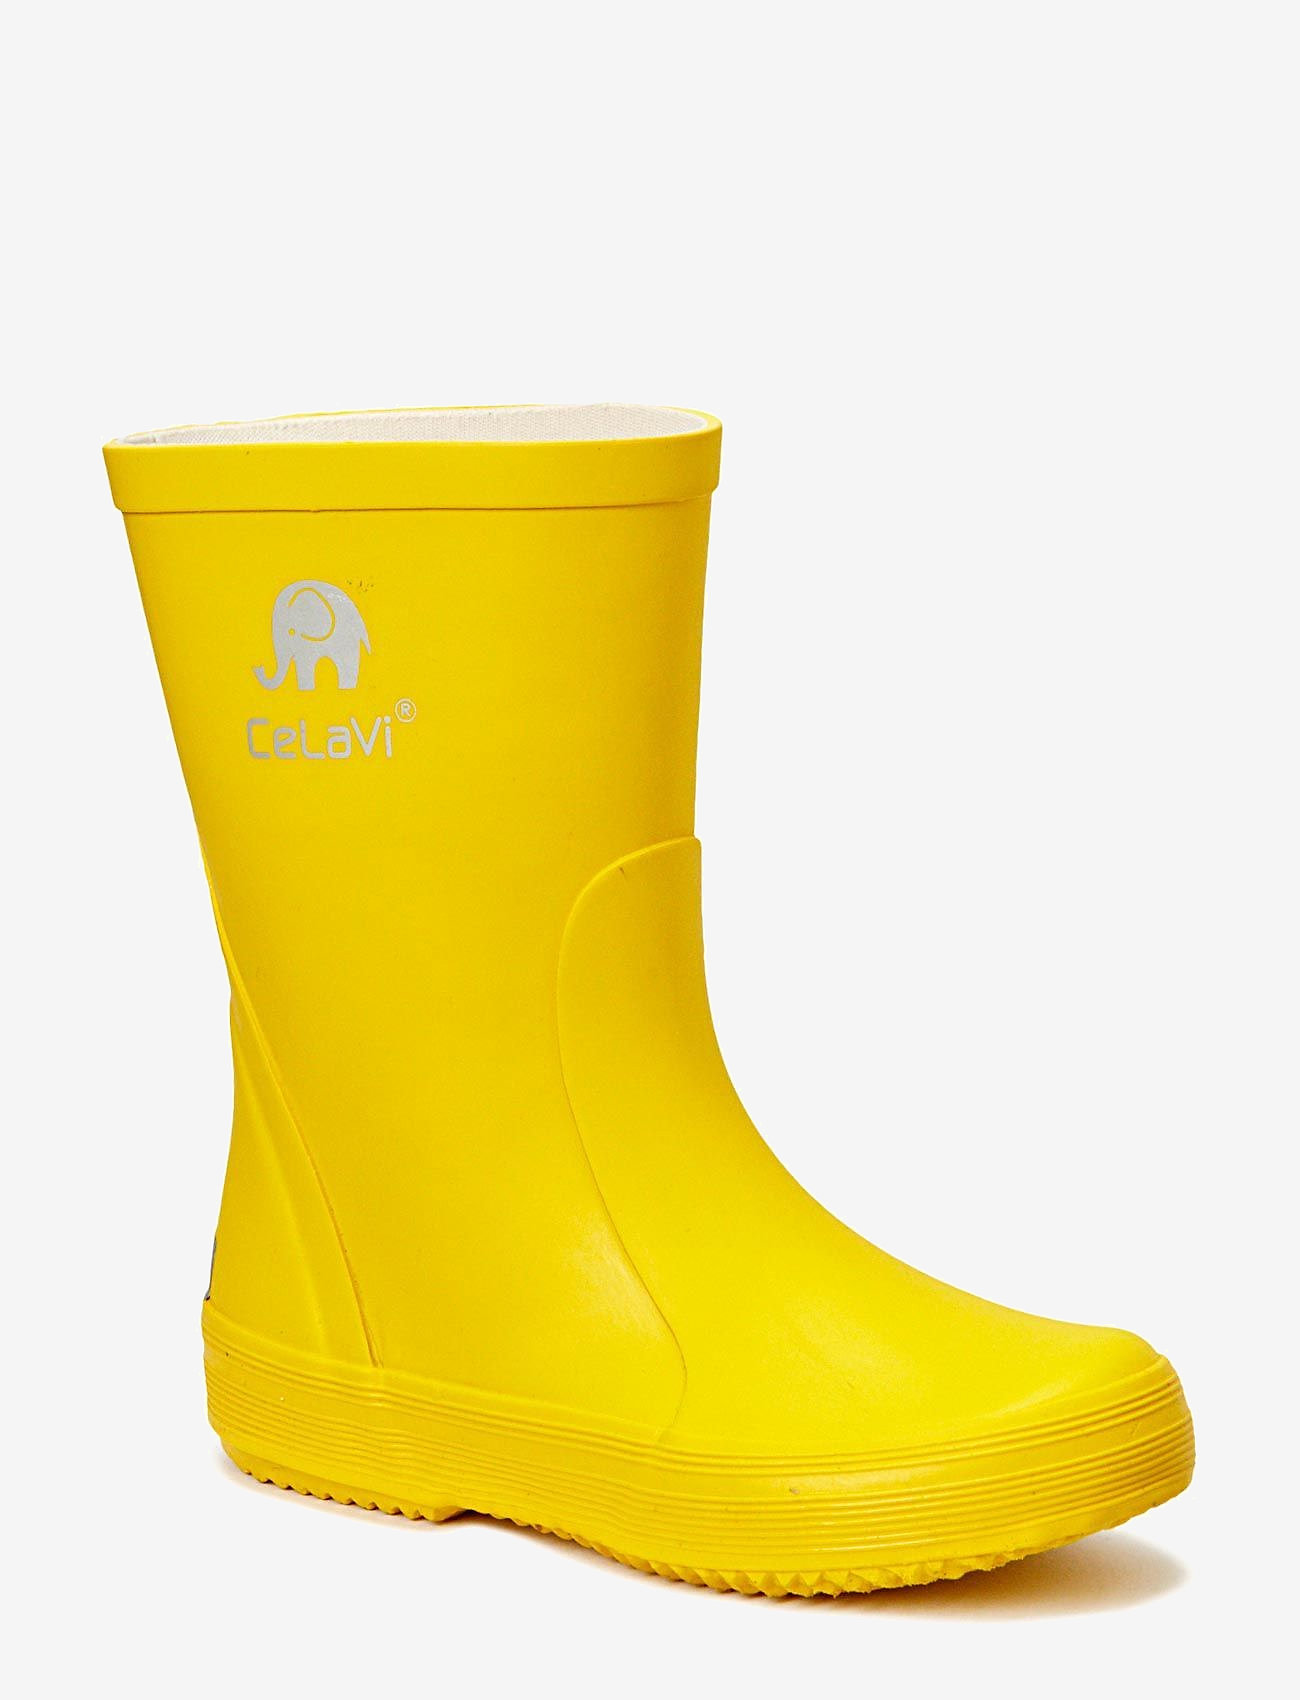 CeLaVi - Basic wellies -solid - rubberboots - yellow